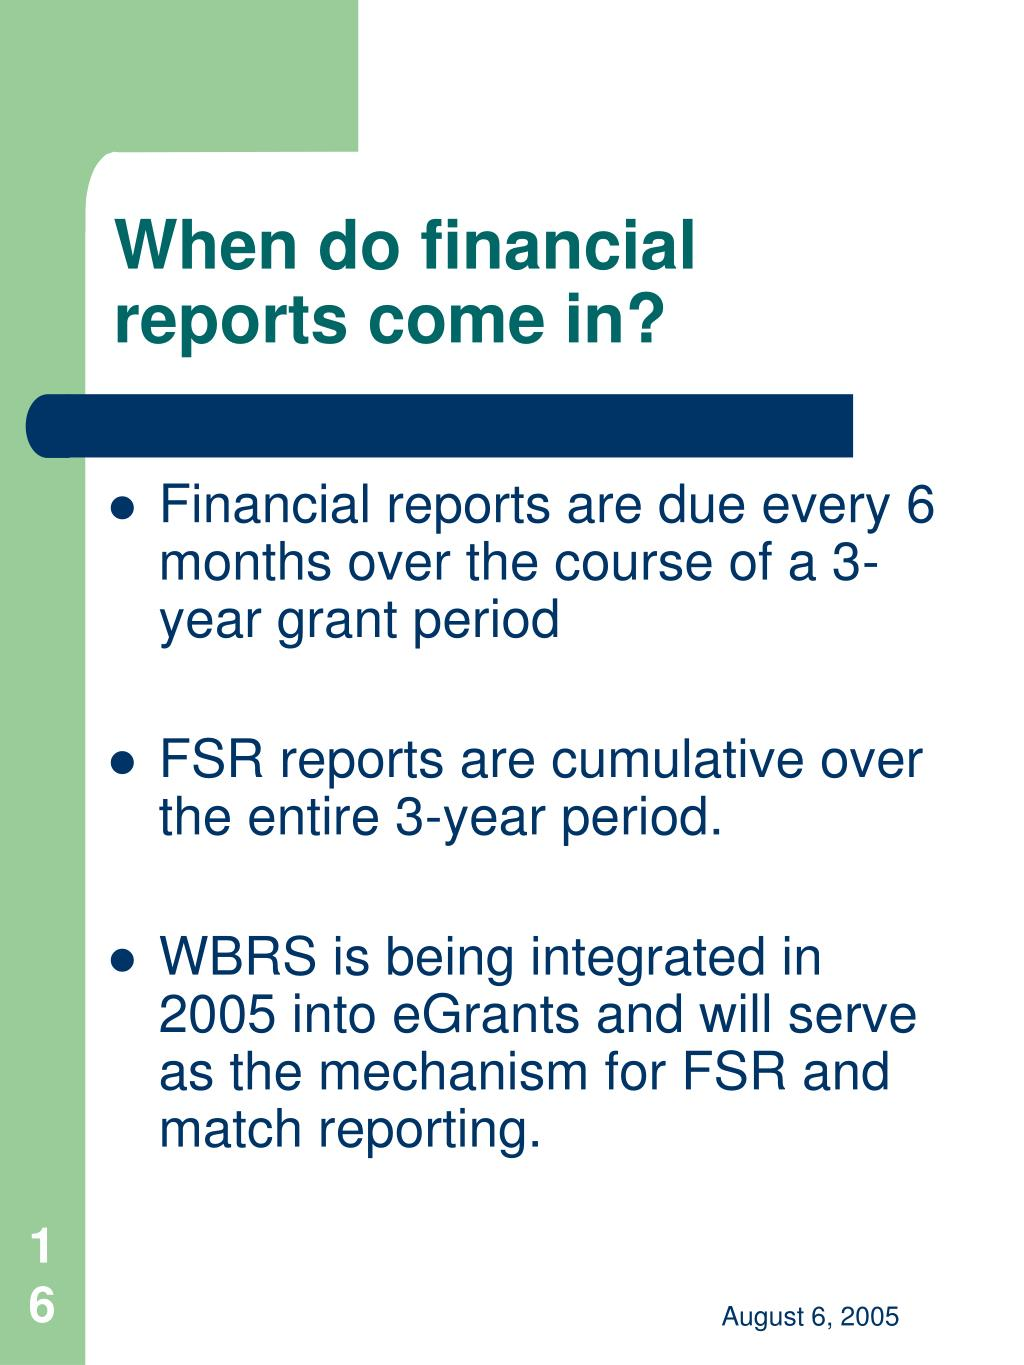 When do financial reports come in?